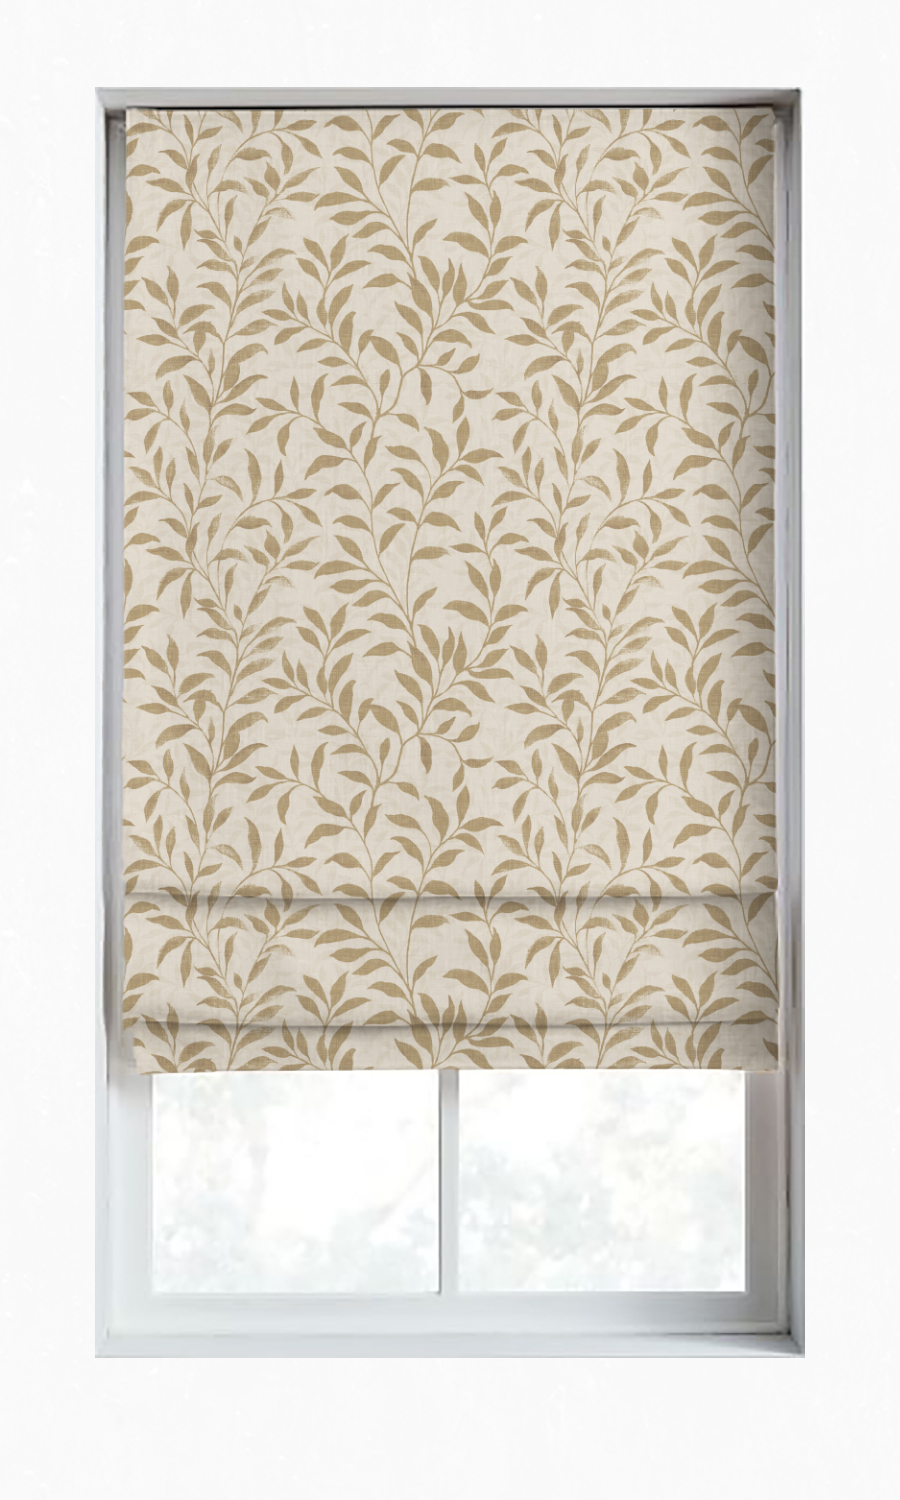 Floral Printed Custom Shade For Bedroom